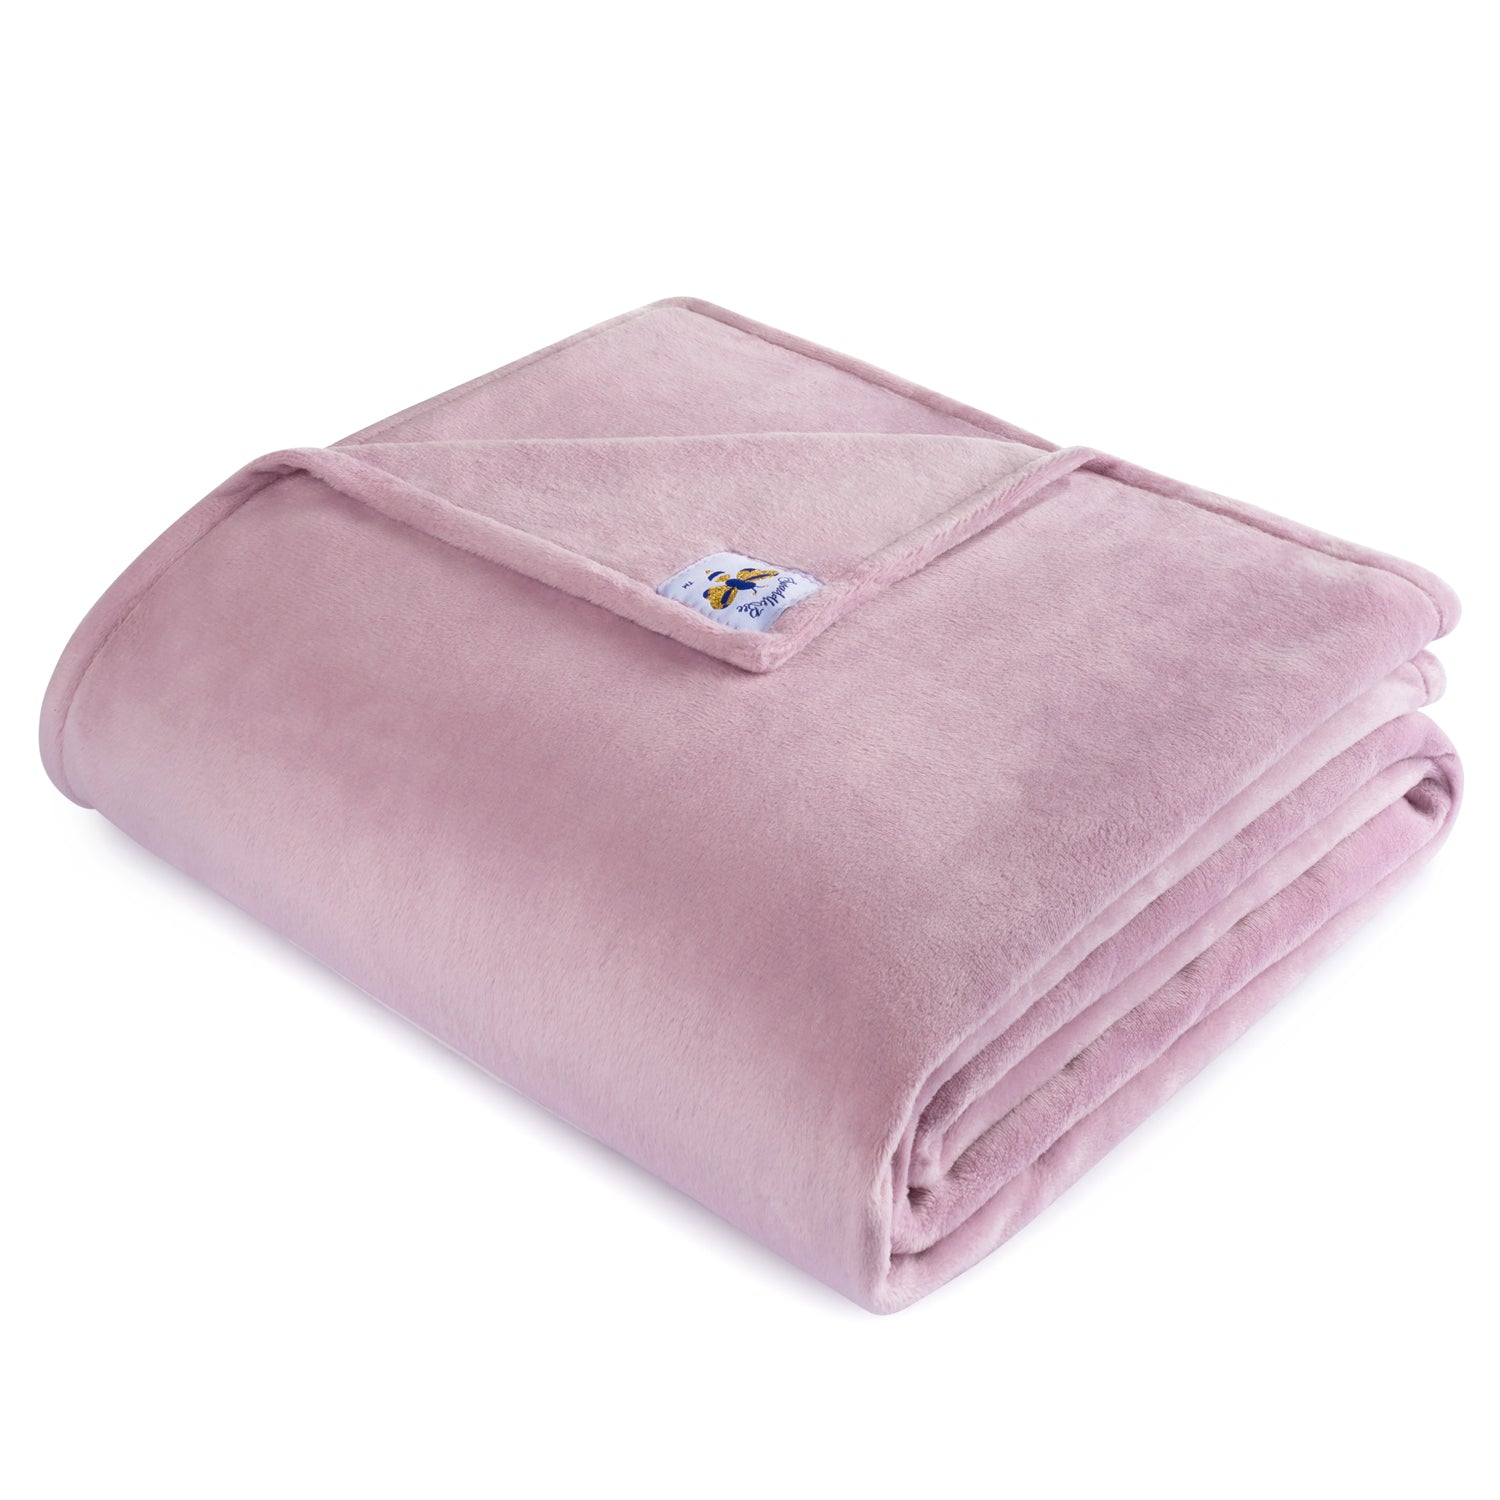 BiggerBee Minky Throw Blanket Dusty Lavender **IN STOCK**